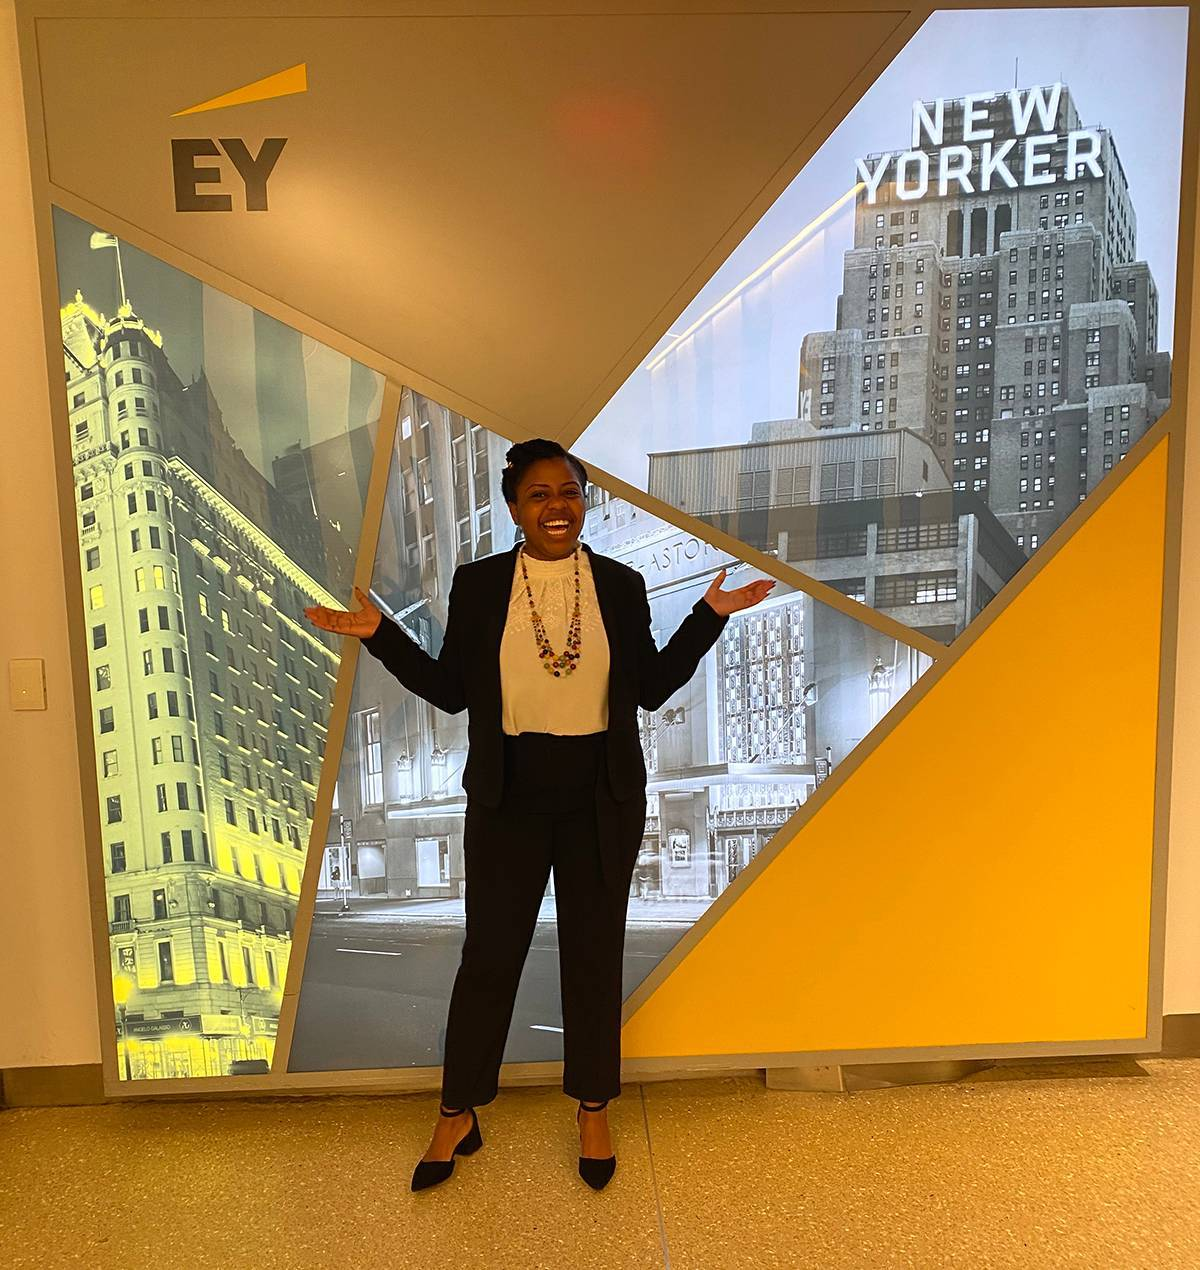 Novihelha Moleni attends Super Day at the New York City EY headquarters in 2019.